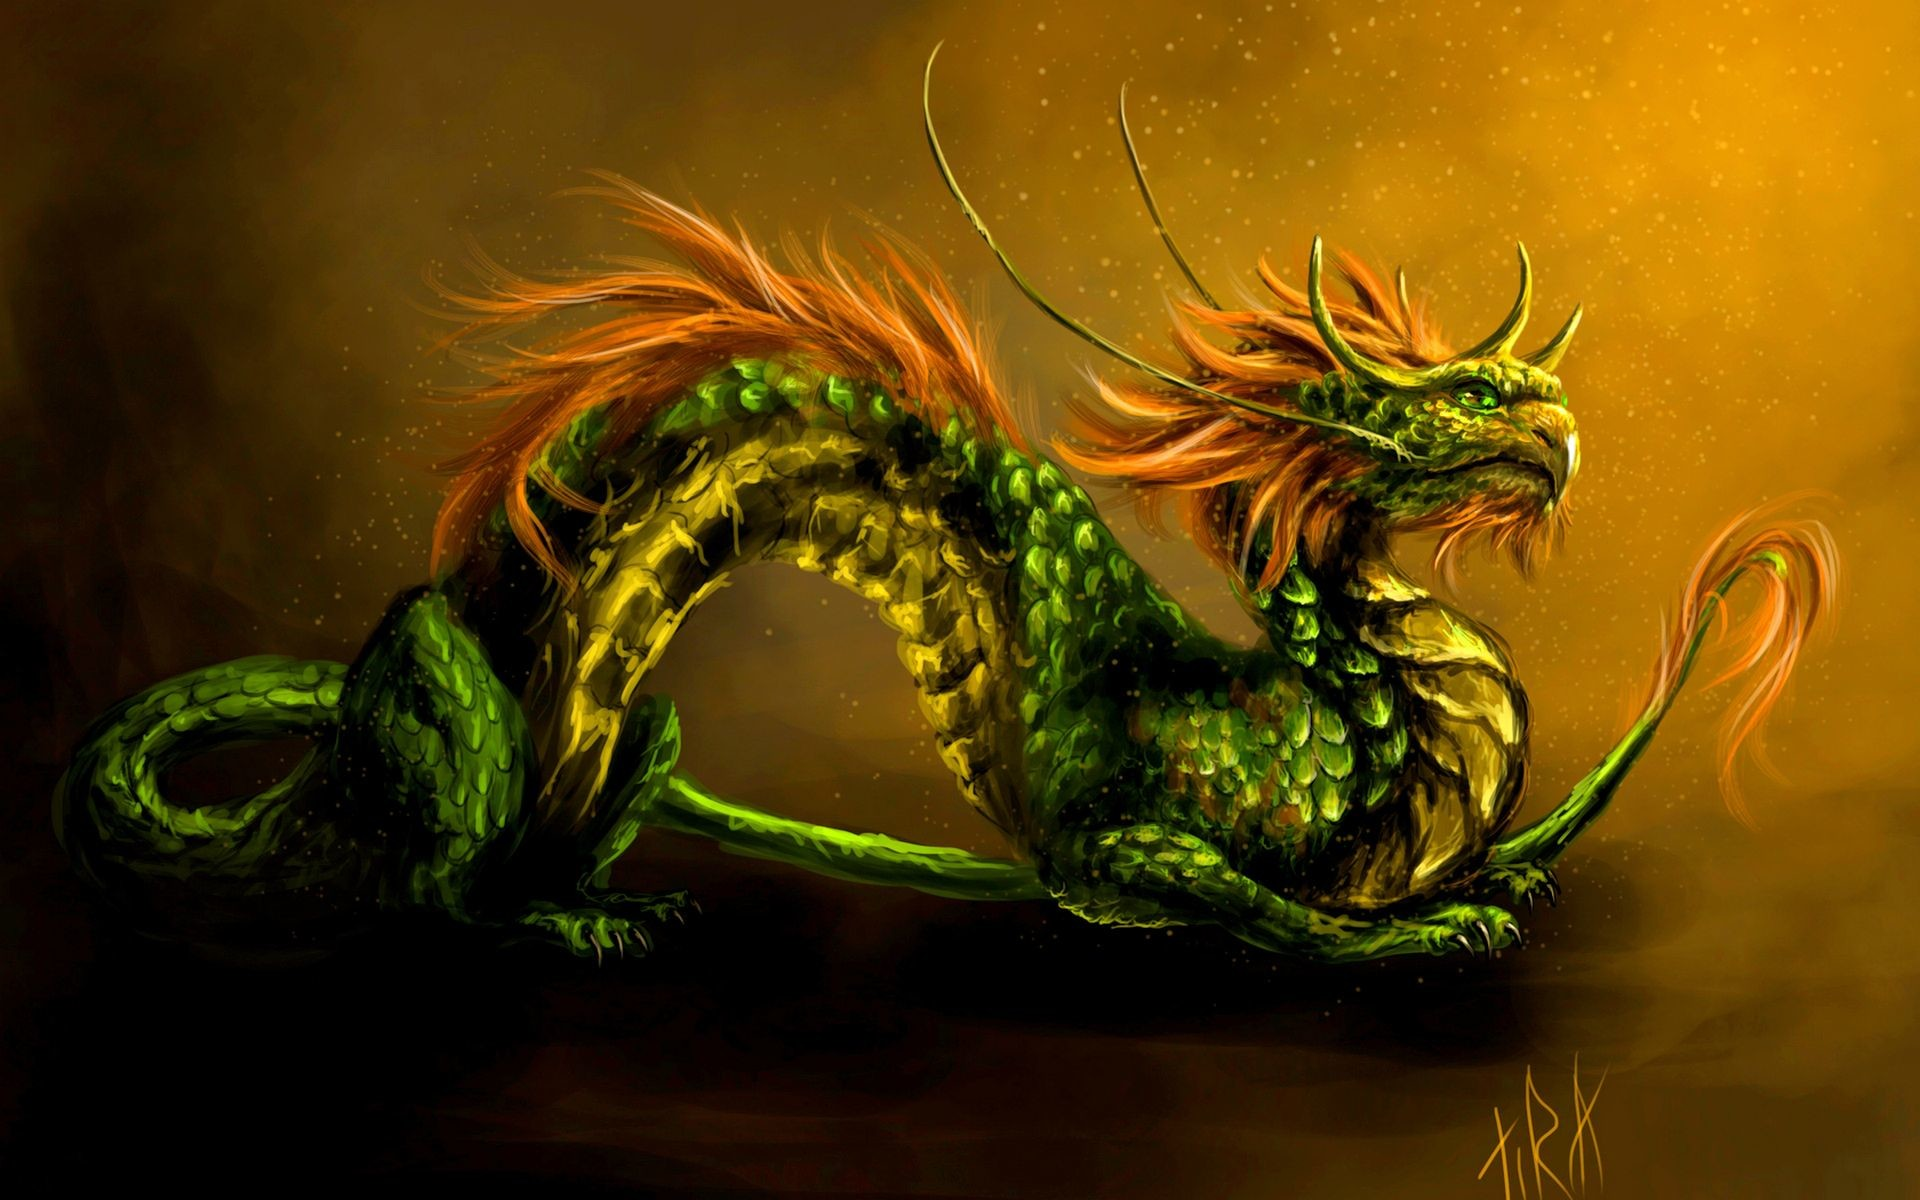 Cool 3d dragon wallpapers 55 images - Dragon wallpaper hd for pc ...